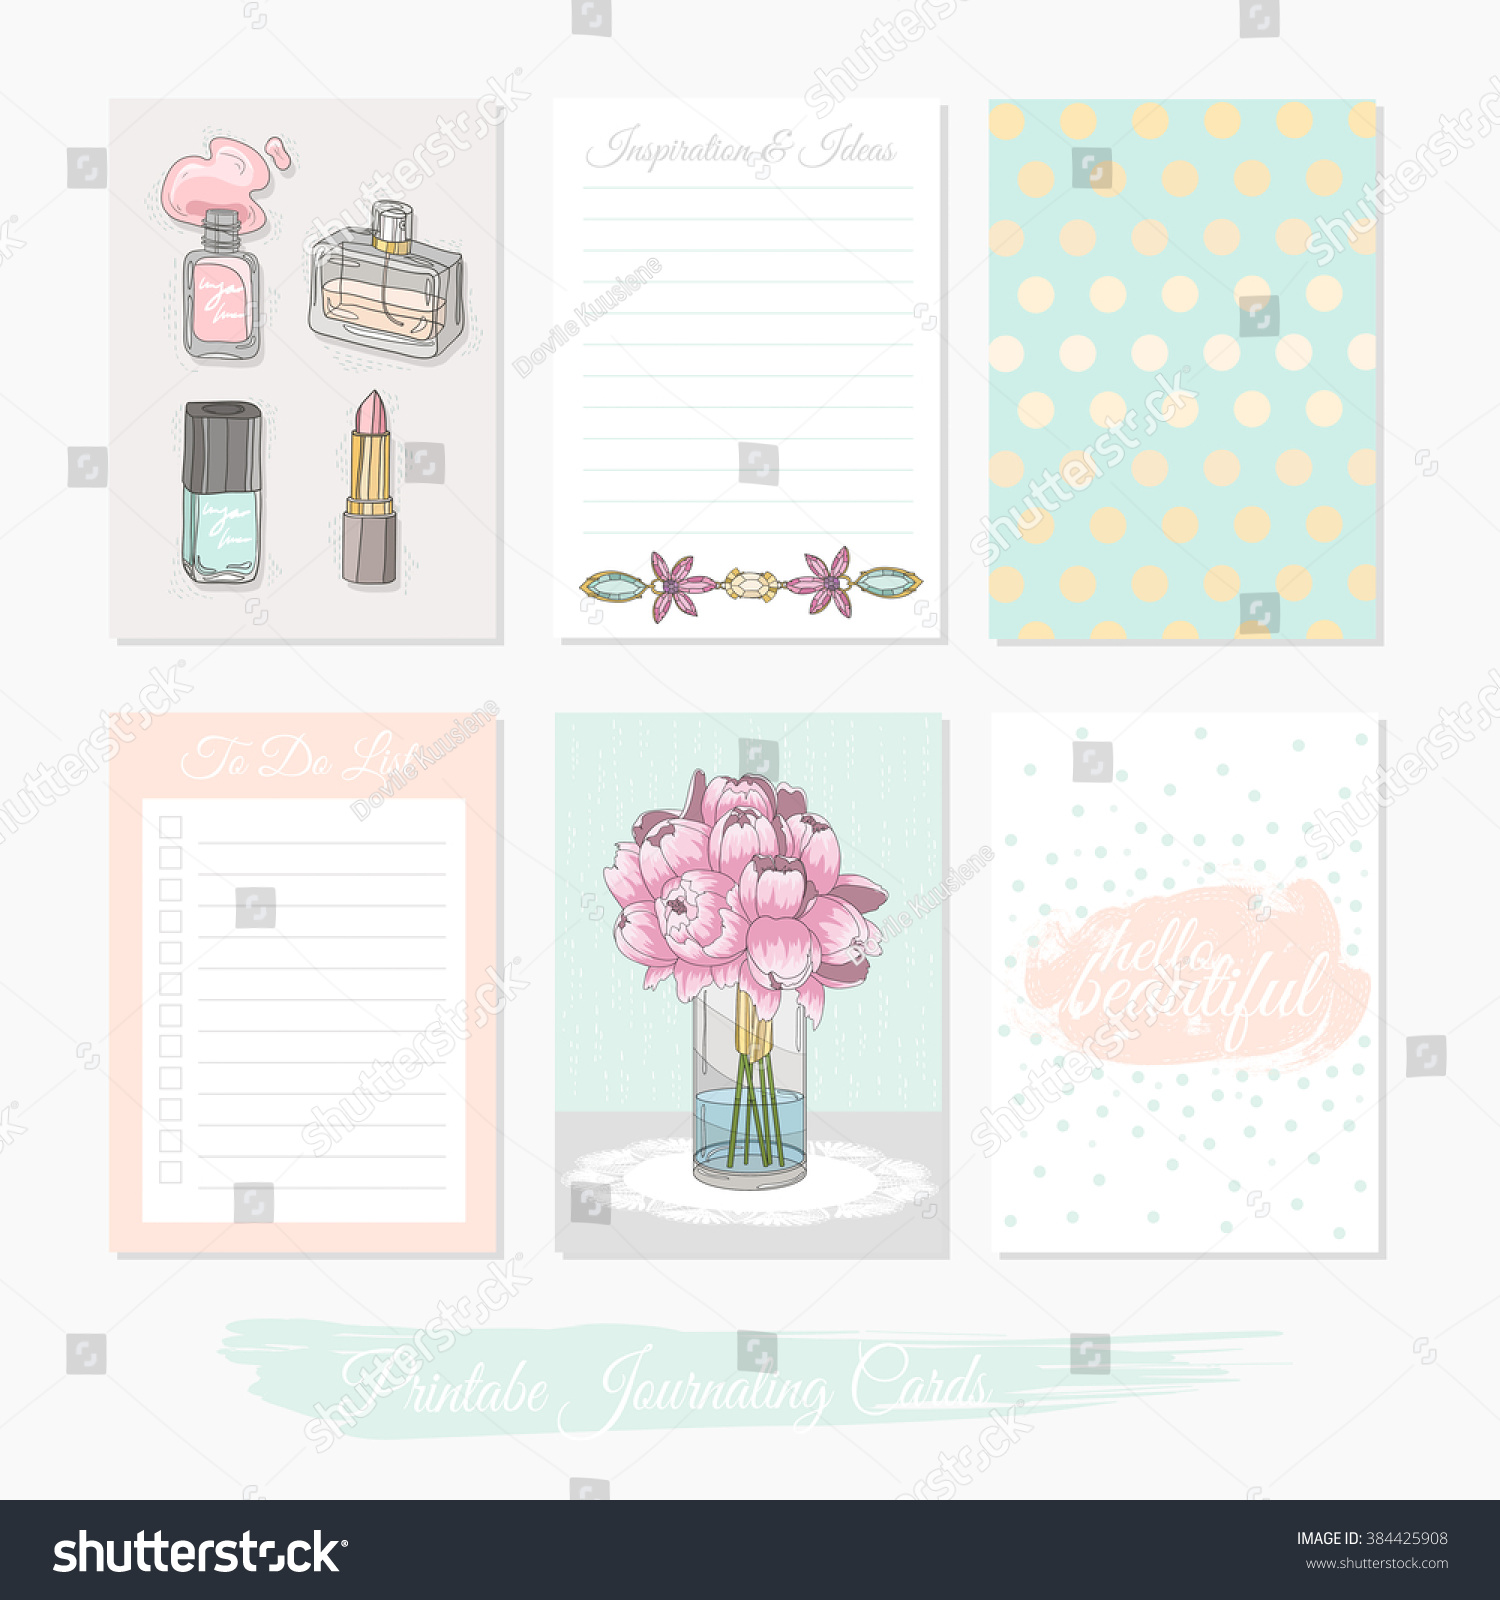 Printable cute set of filler cards with flowers makeup jewelry and beauty accessories Vector templates for planner planner planner planner planner planner planner planner planner planner